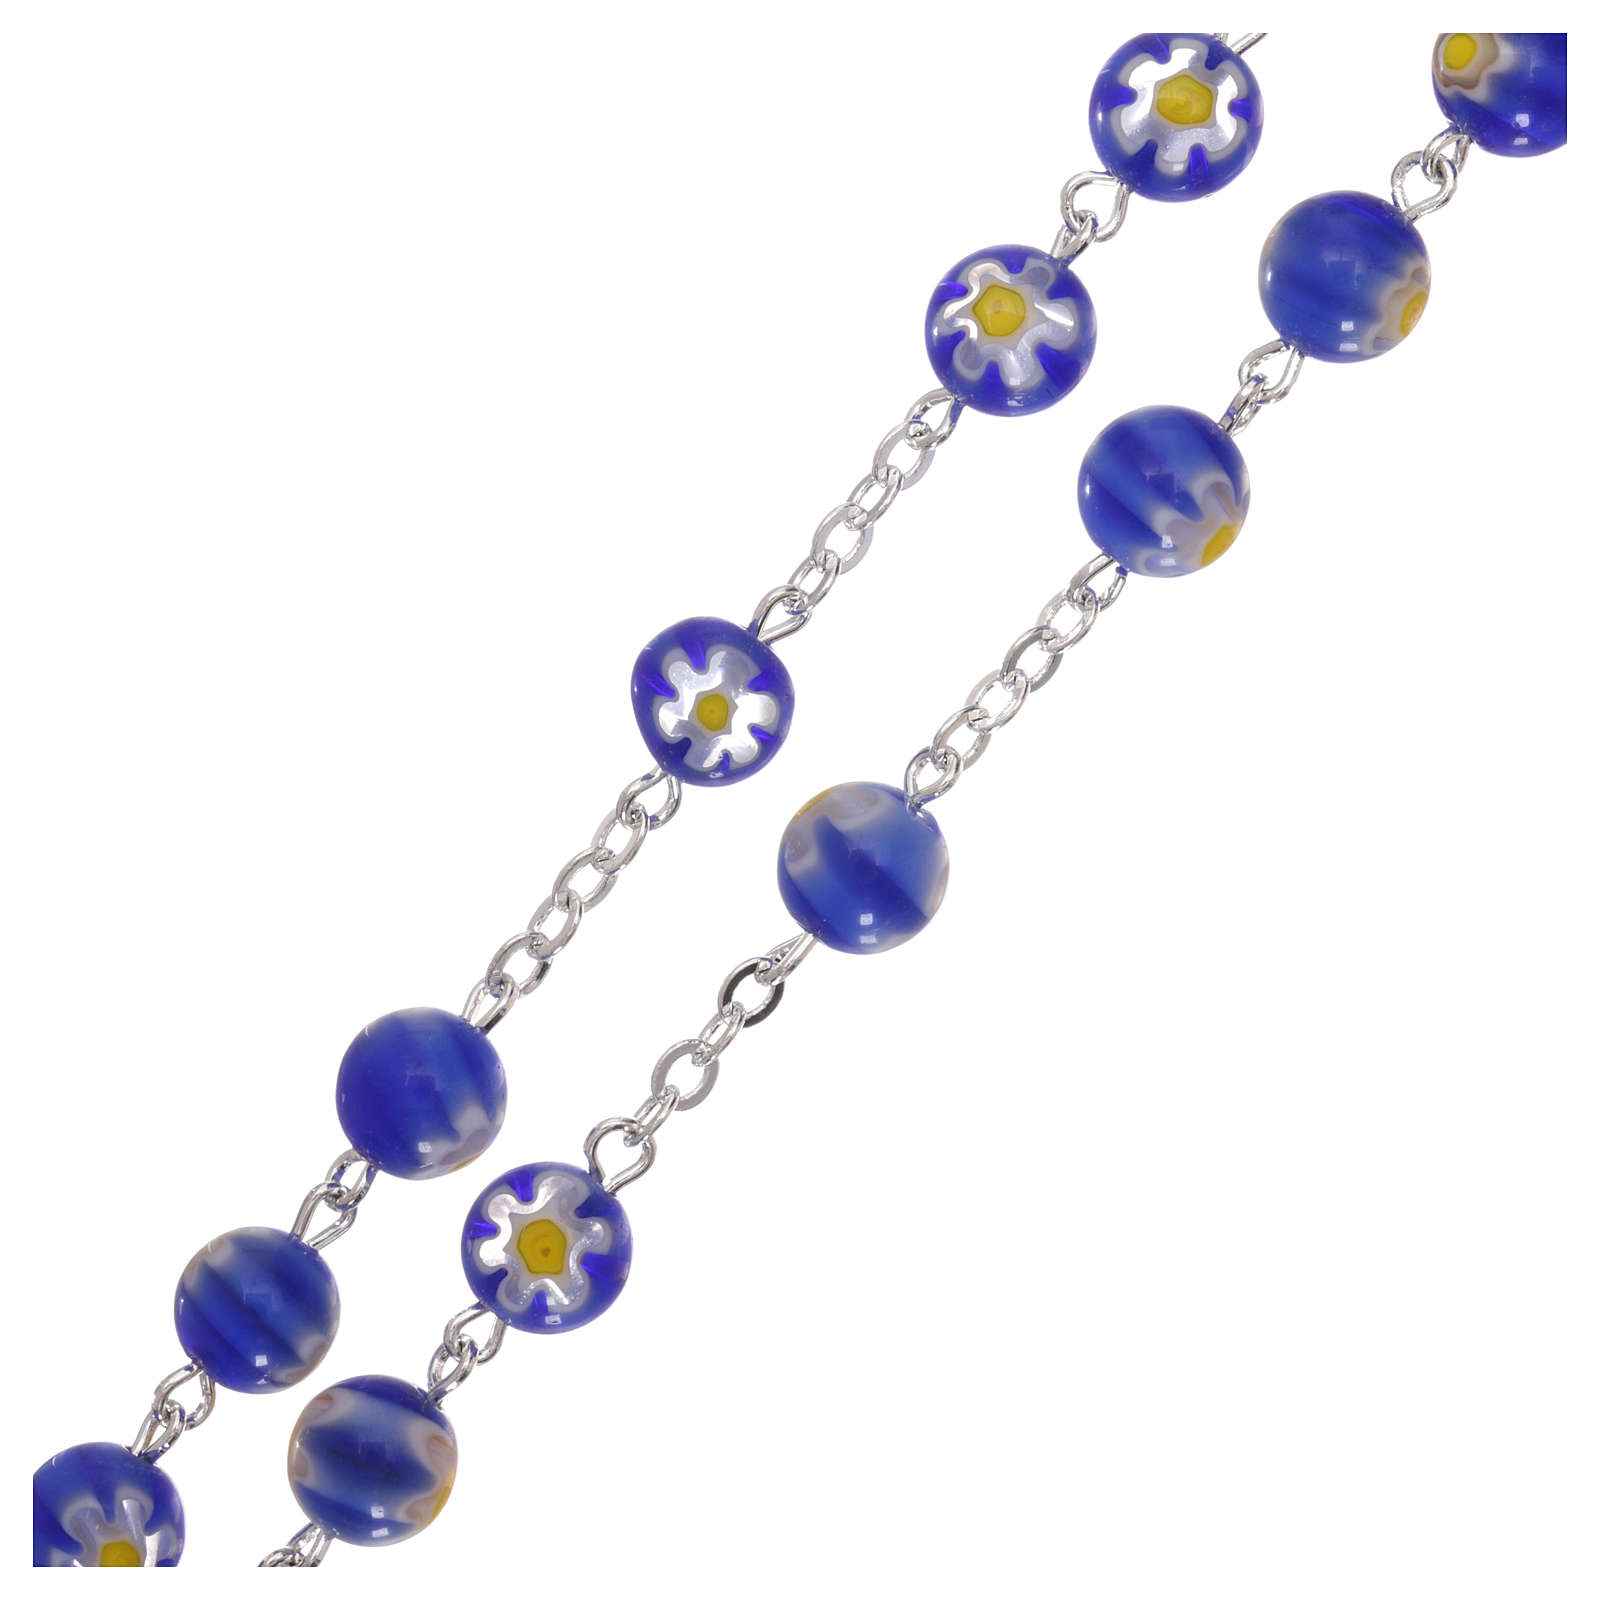 Rosary beads in blue Murano glass style 8mm 4